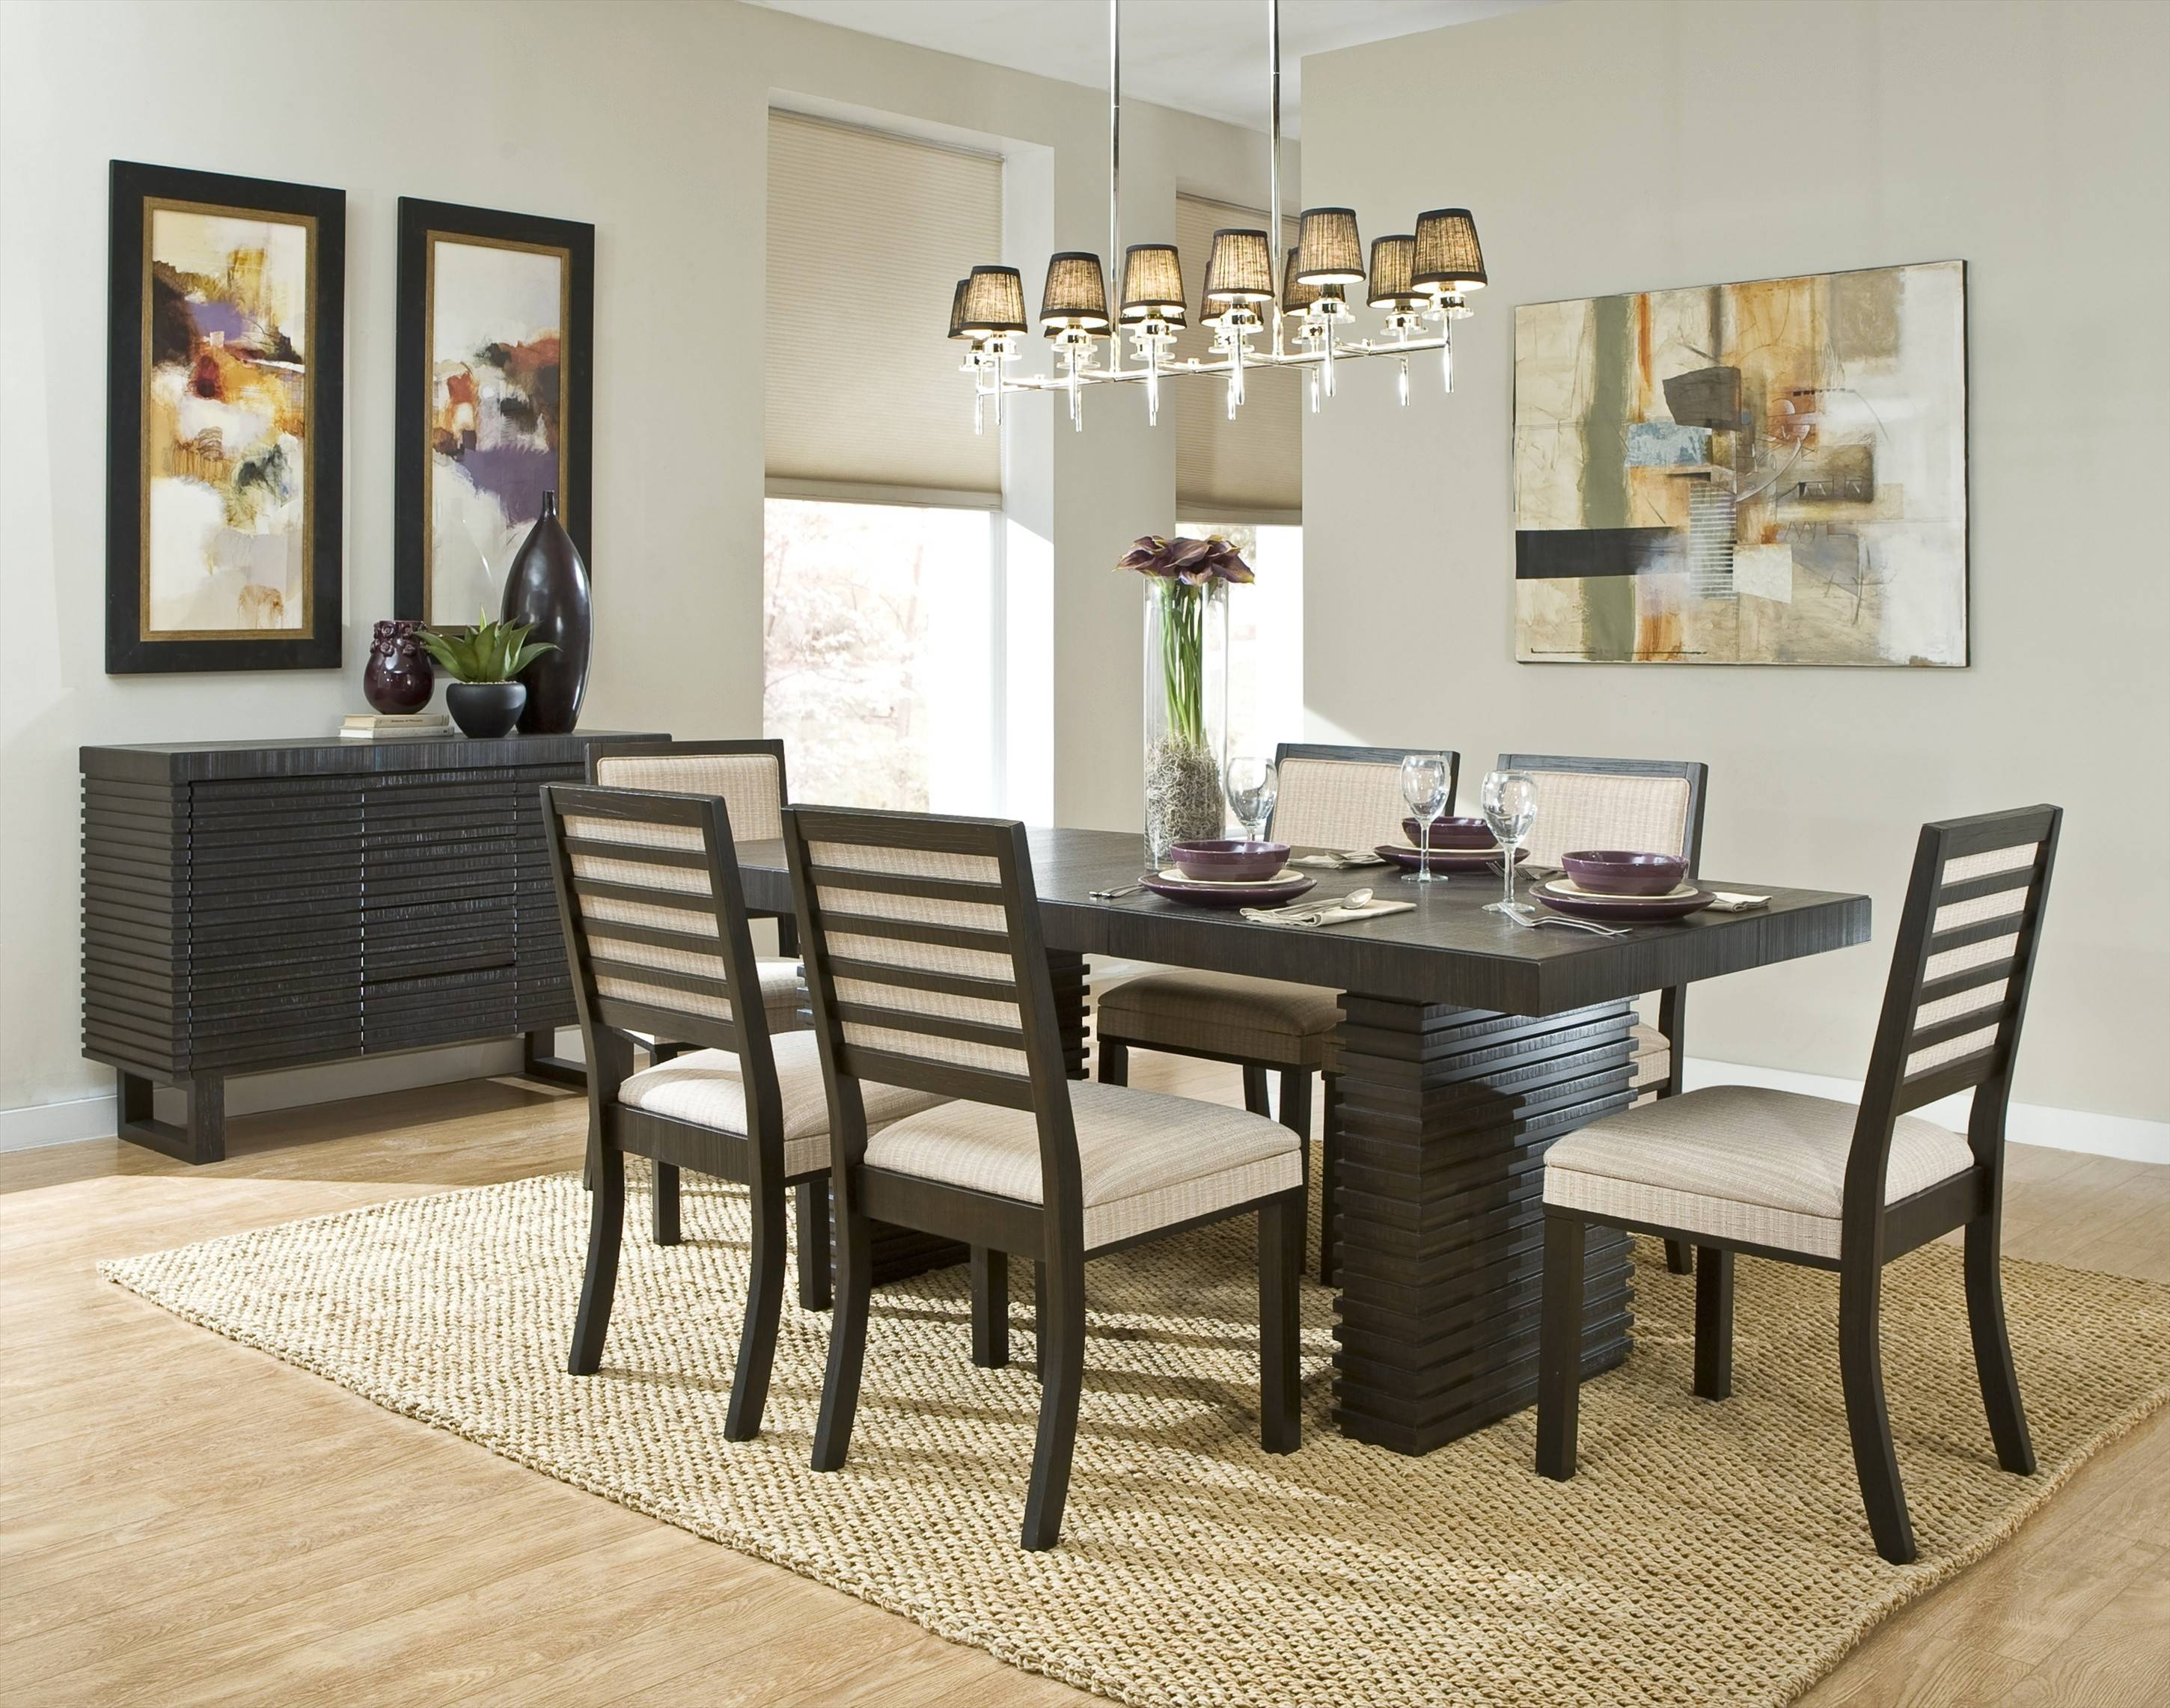 Dining Room Sideboard Decorating Ideas ~ Dining Room Pertaining To Recent Dining Room Sets With Sideboards (#5 of 15)